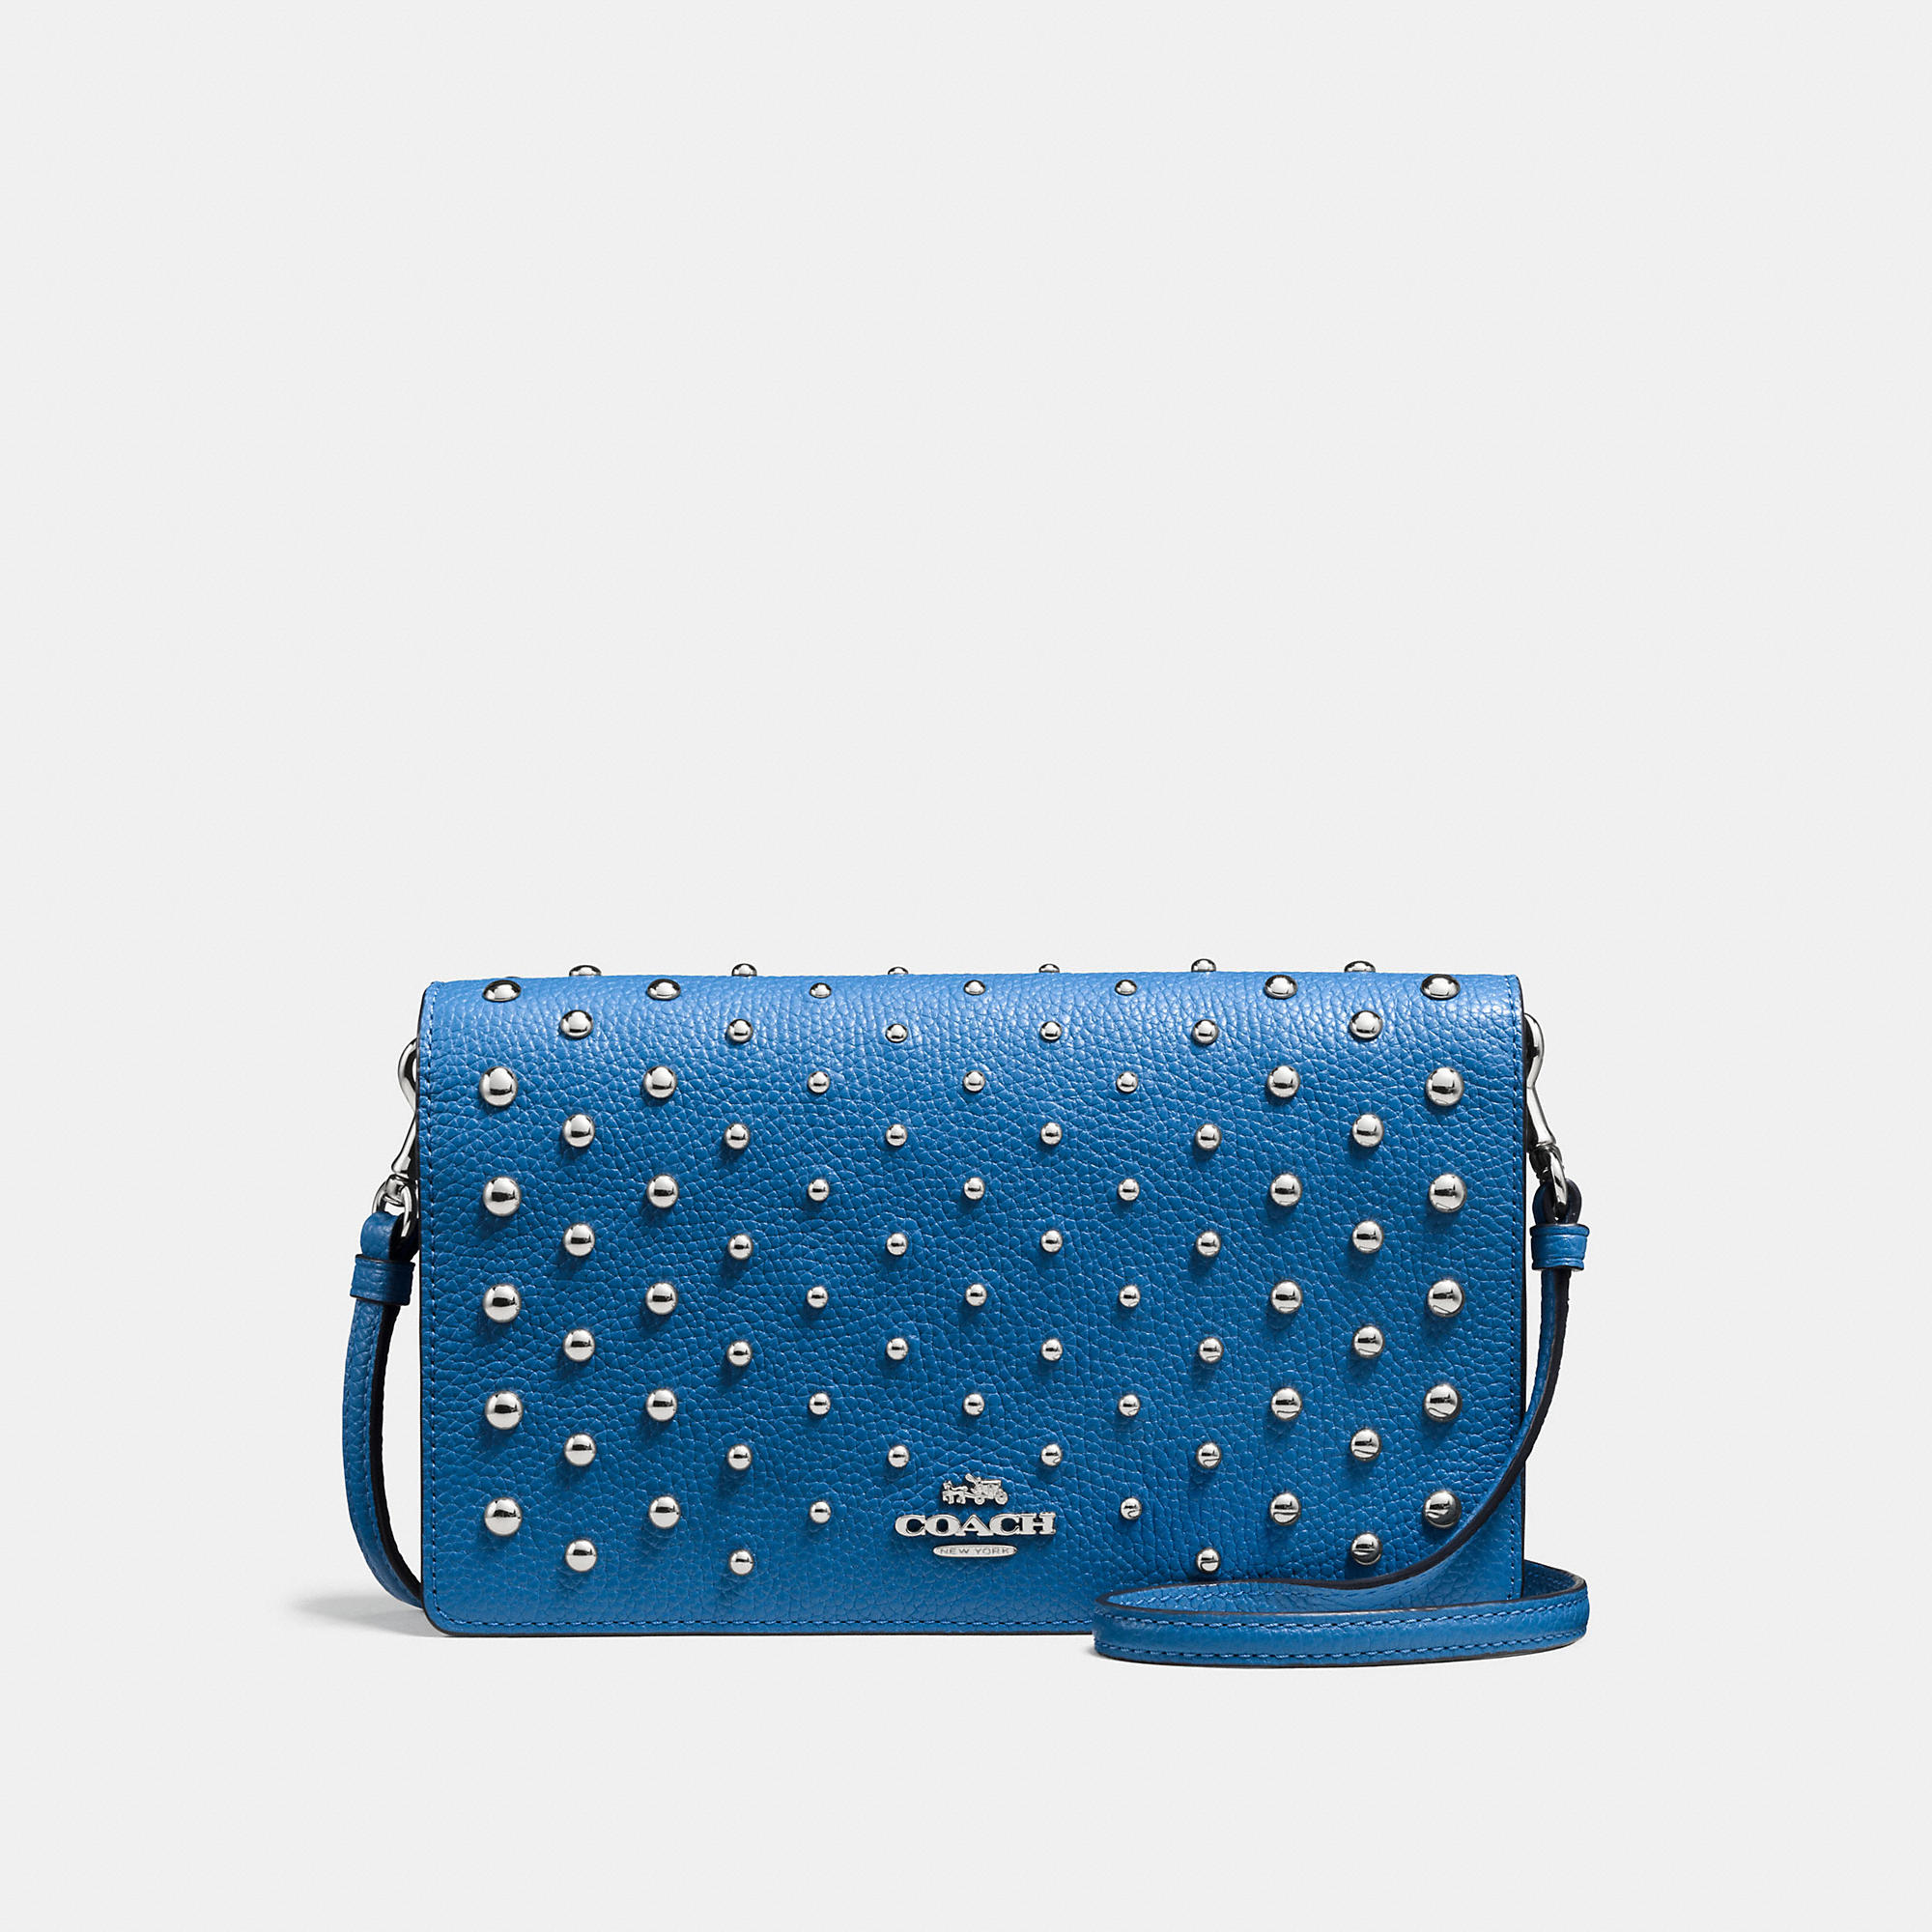 Coach Foldover Crossbody In Polished Pebble Leather With Ombre Rivets